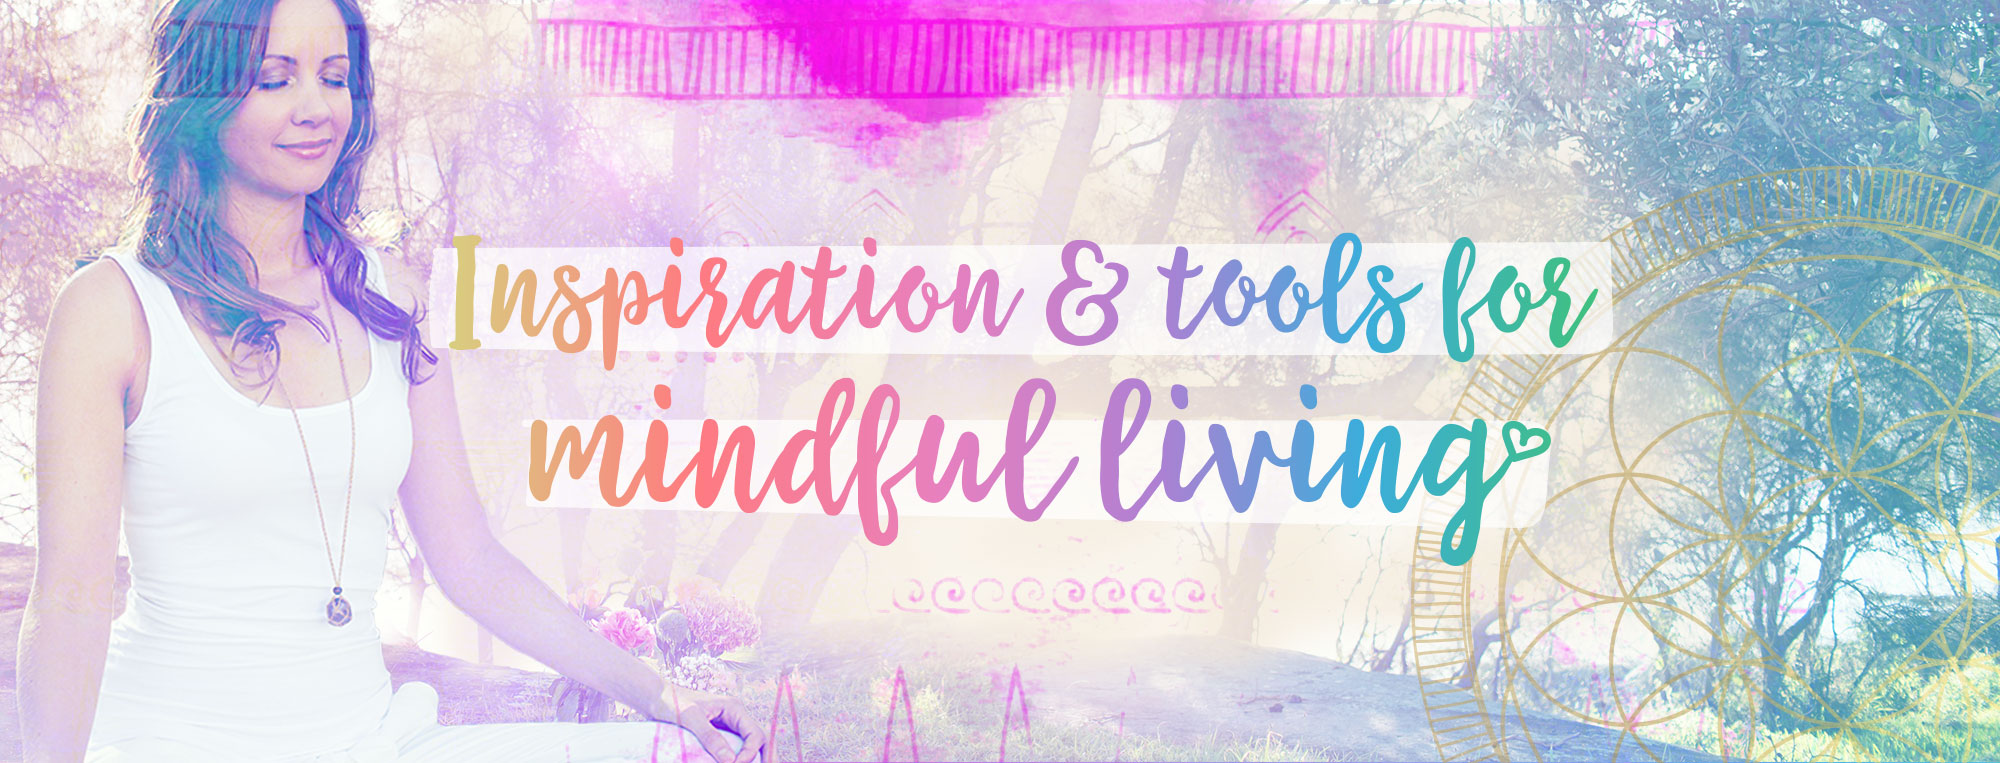 Inspiration & tools for mindful living